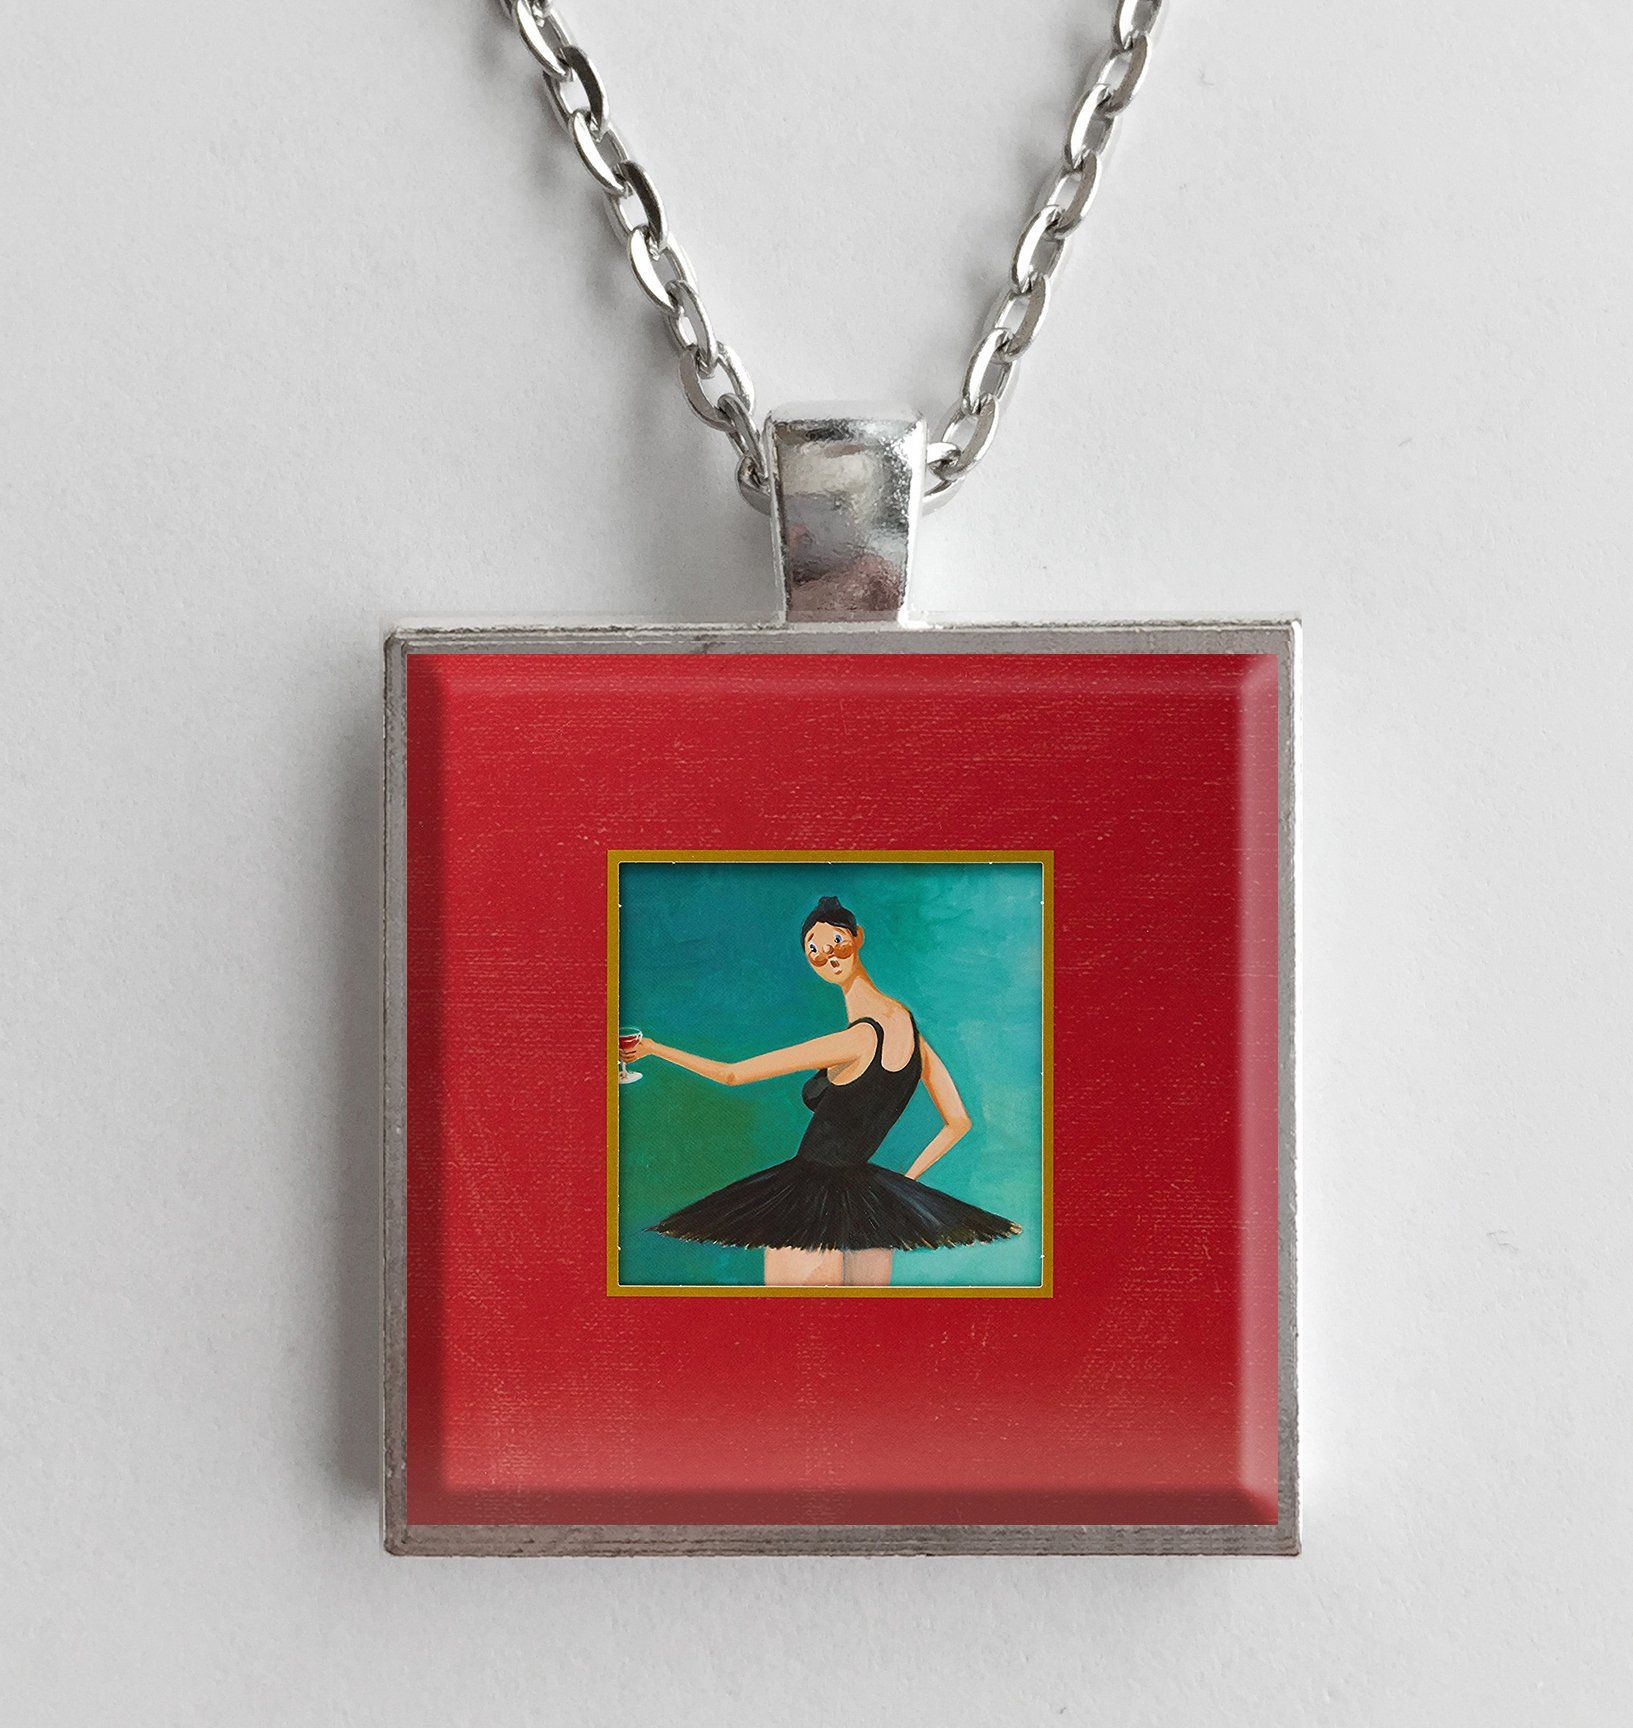 Kanye West My Beautiful Dark Twisted Fantasy Album Cover Art Pendant Necklace Beautiful Dark Twisted Fantasy Dark Twisted Cover Art